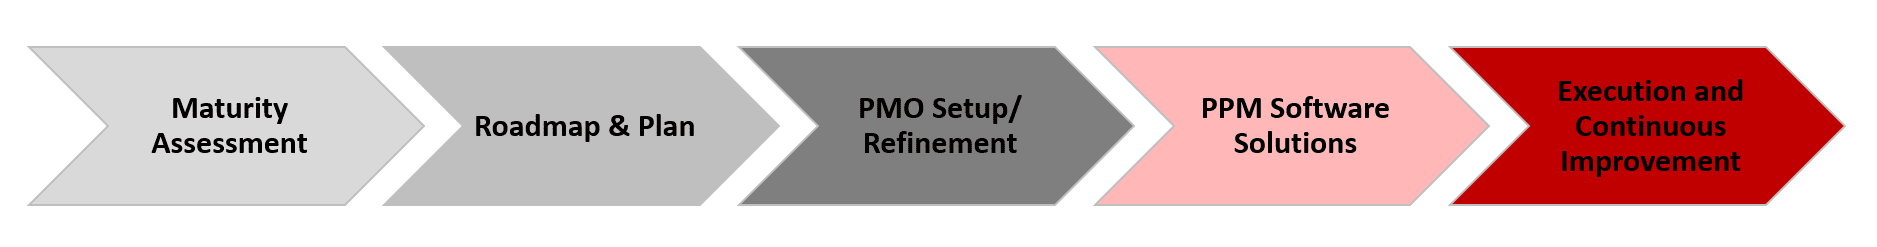 Optimum PPM Solutions